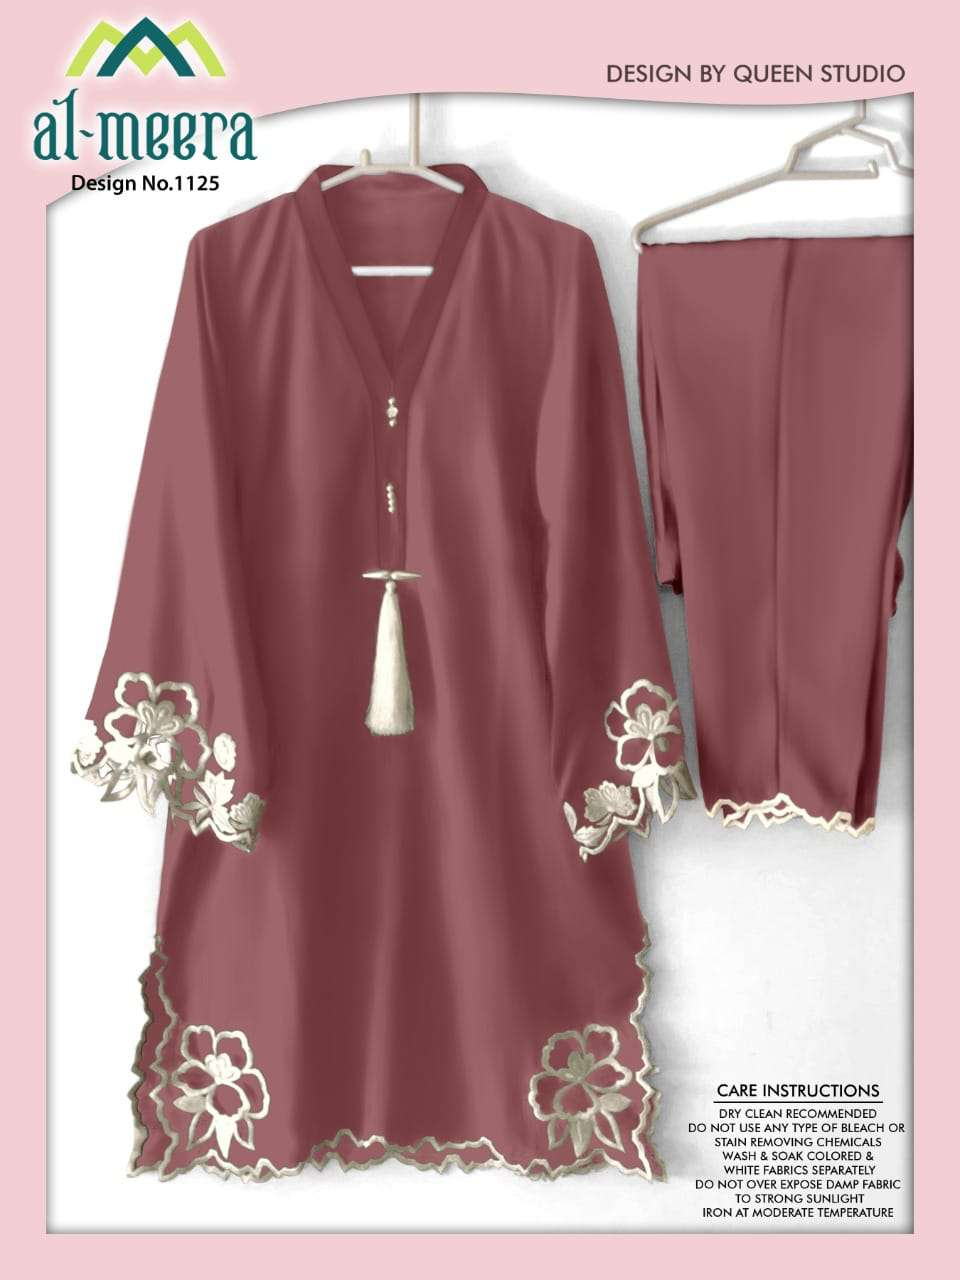 AL MEERA D.NO 1125 DUSTY PINK DESIGNER EMBROIDERY WORK KURTI WITH BOTTOM PARTYWEAR IN SINGLES